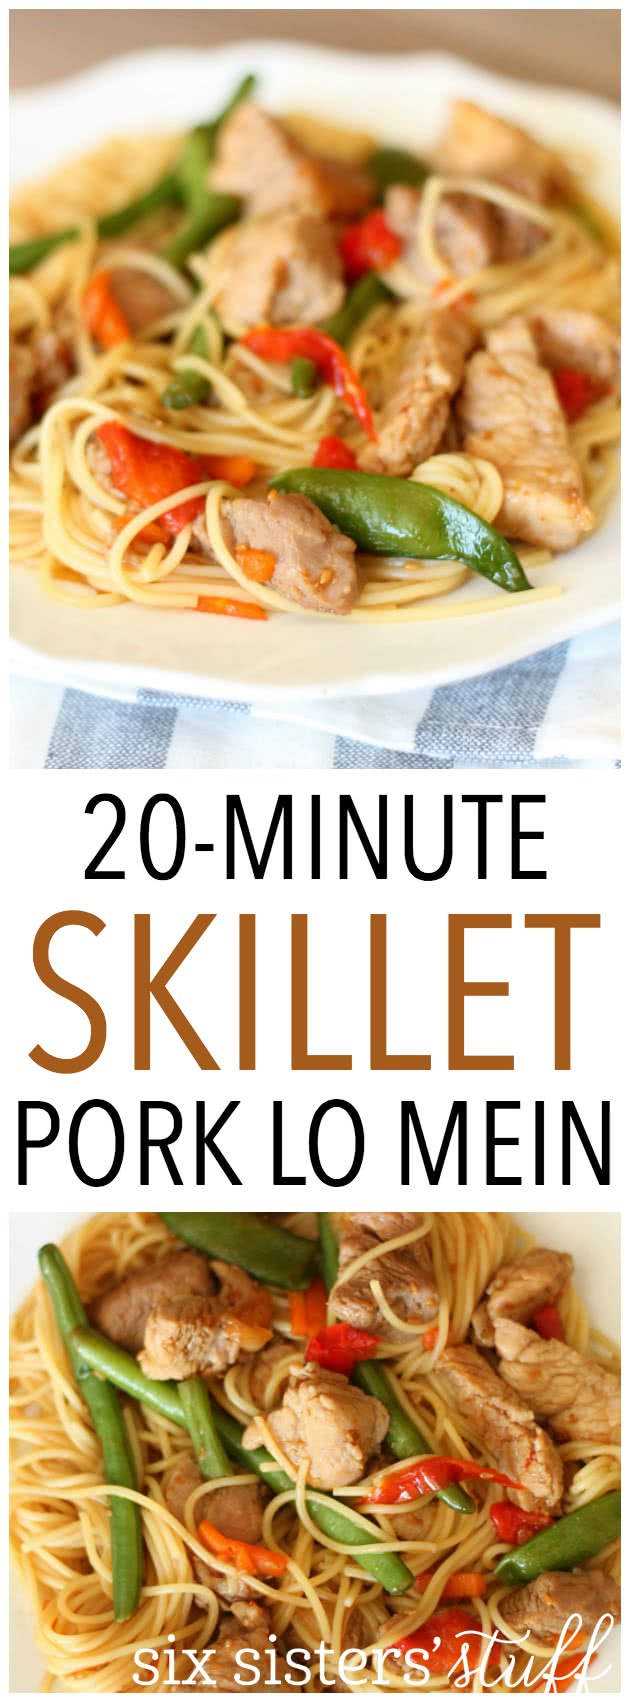 20-Minute Skillet Pork Lo Mein from SixSistersStuff.com. So easy and delicious!jpg